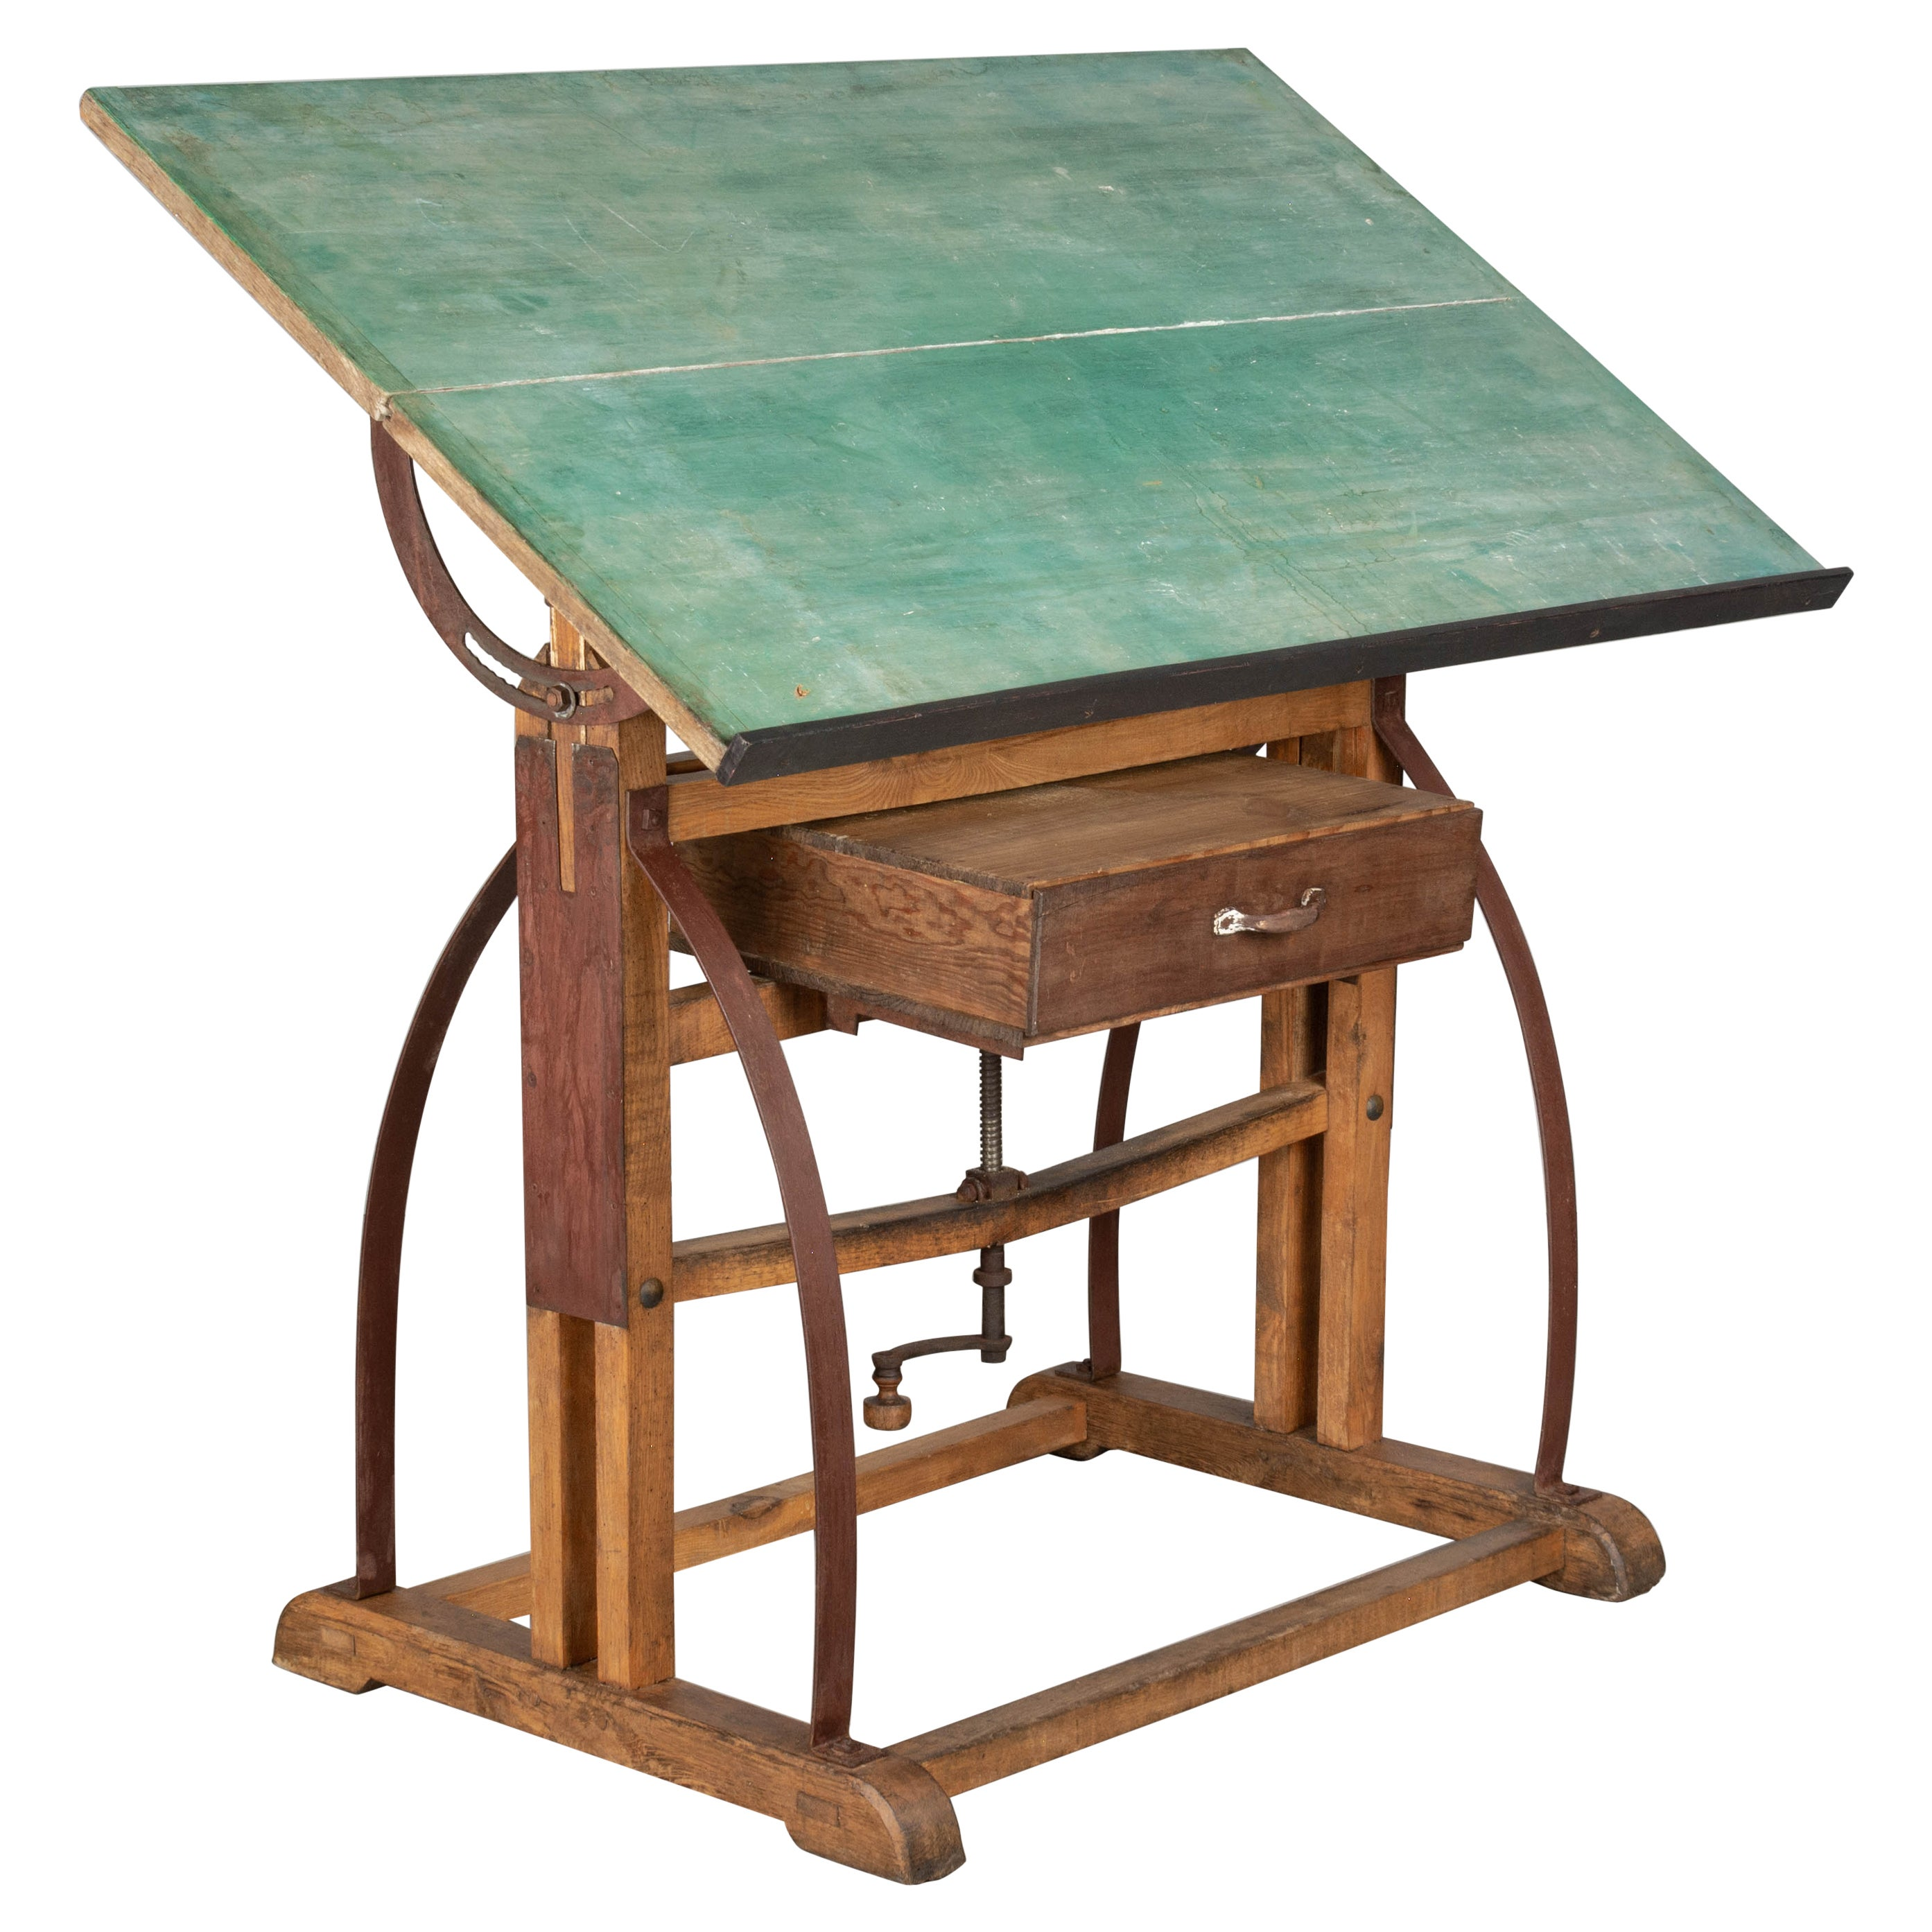 Rustic Industrial French Architect's Drafting Table